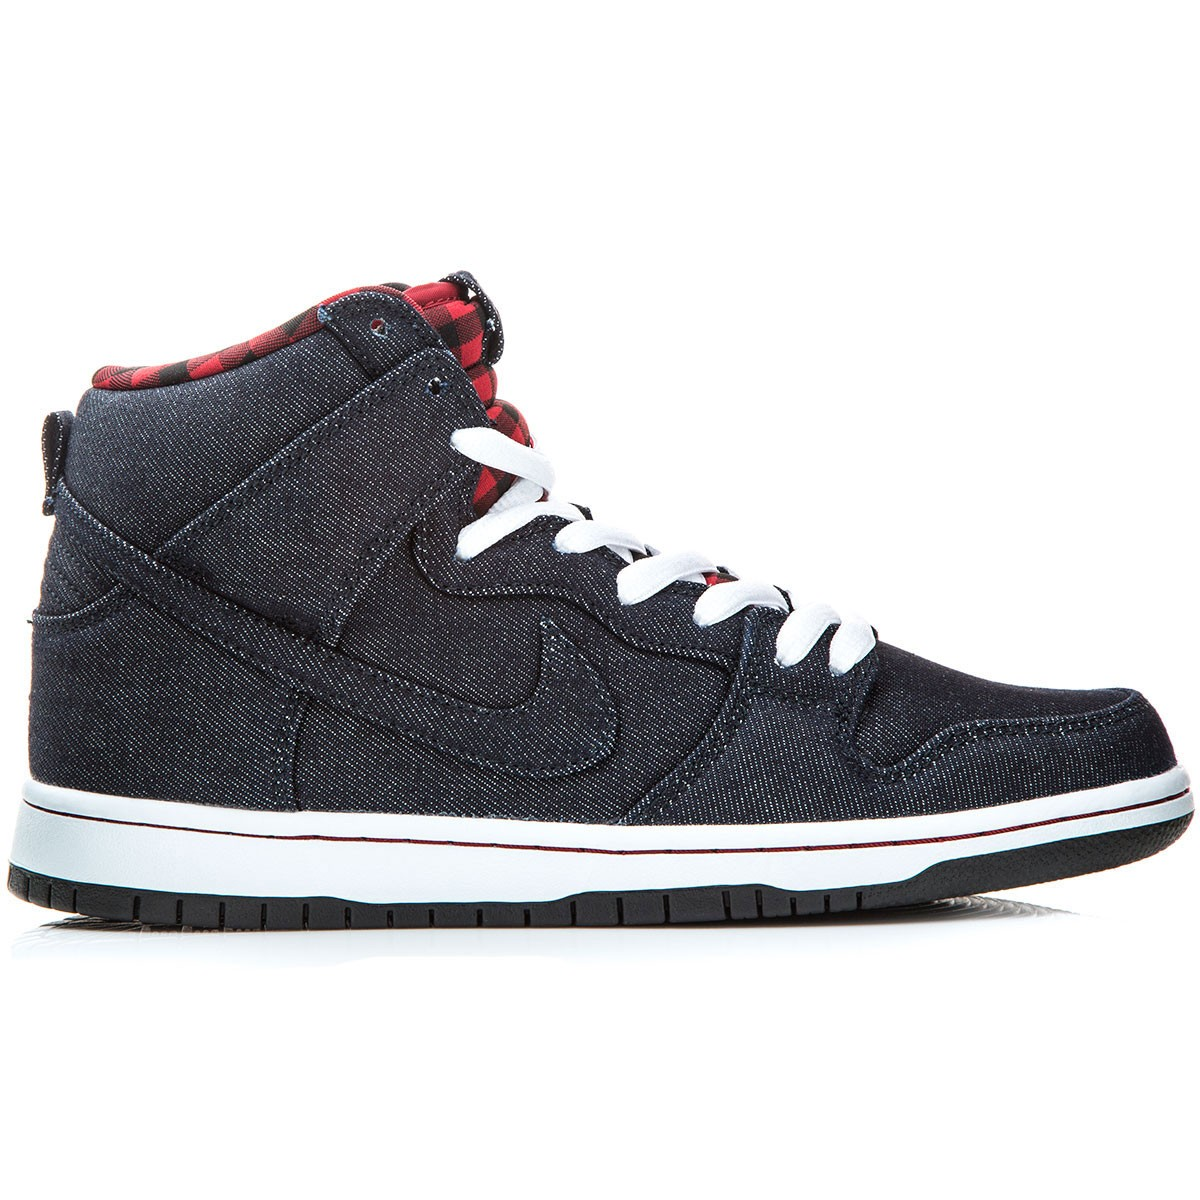 nike dunk high premium sb shoes. Black Bedroom Furniture Sets. Home Design Ideas